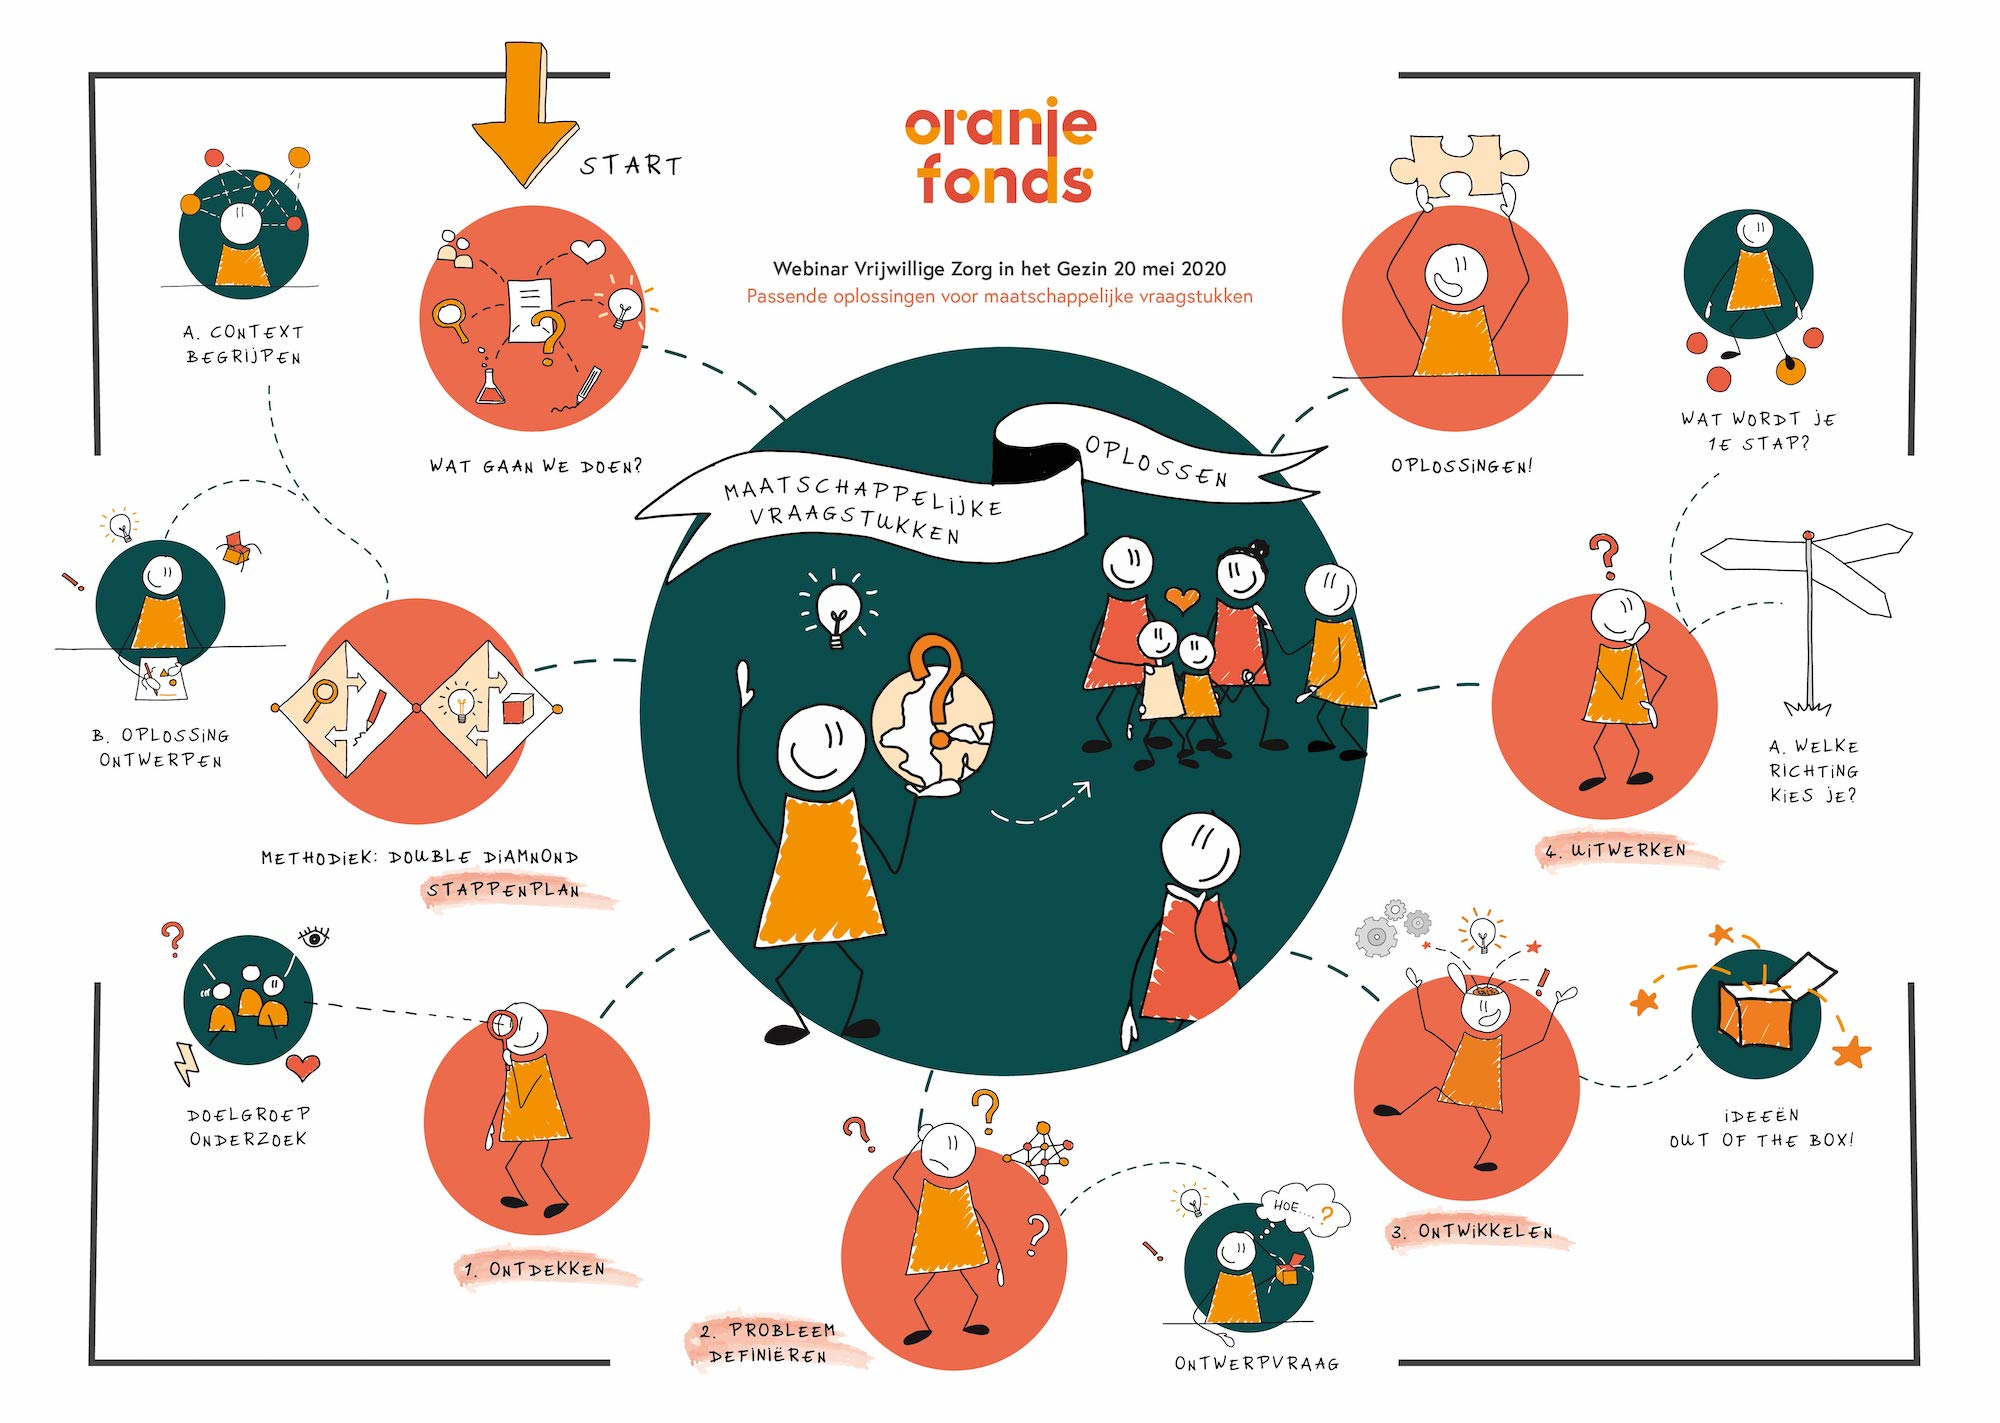 visueel verslag workshop oranje fonds